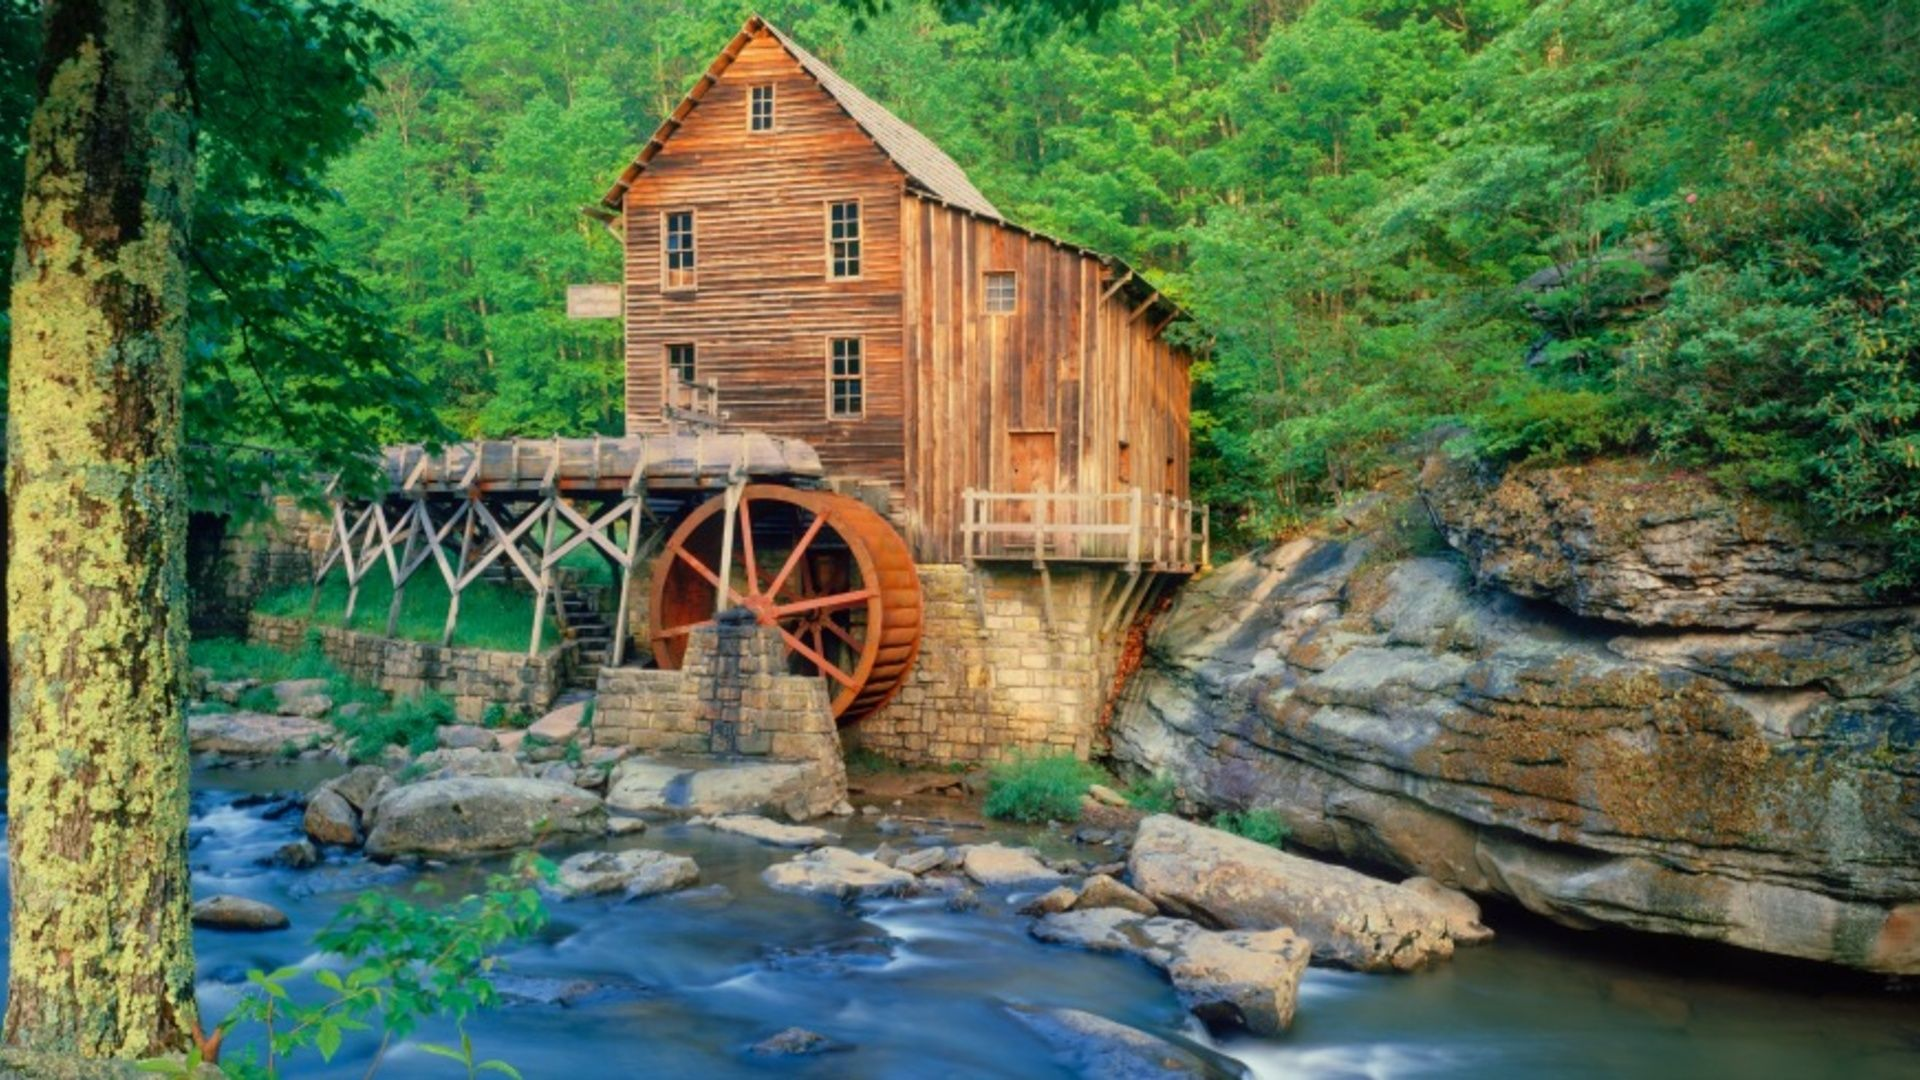 20 Of The Most Beautiful Old Mills In America These Scenic Mills Are A Glimpse Into A Bygone E Video Glade Creek Grist Mill Places Around The World Beautiful Places